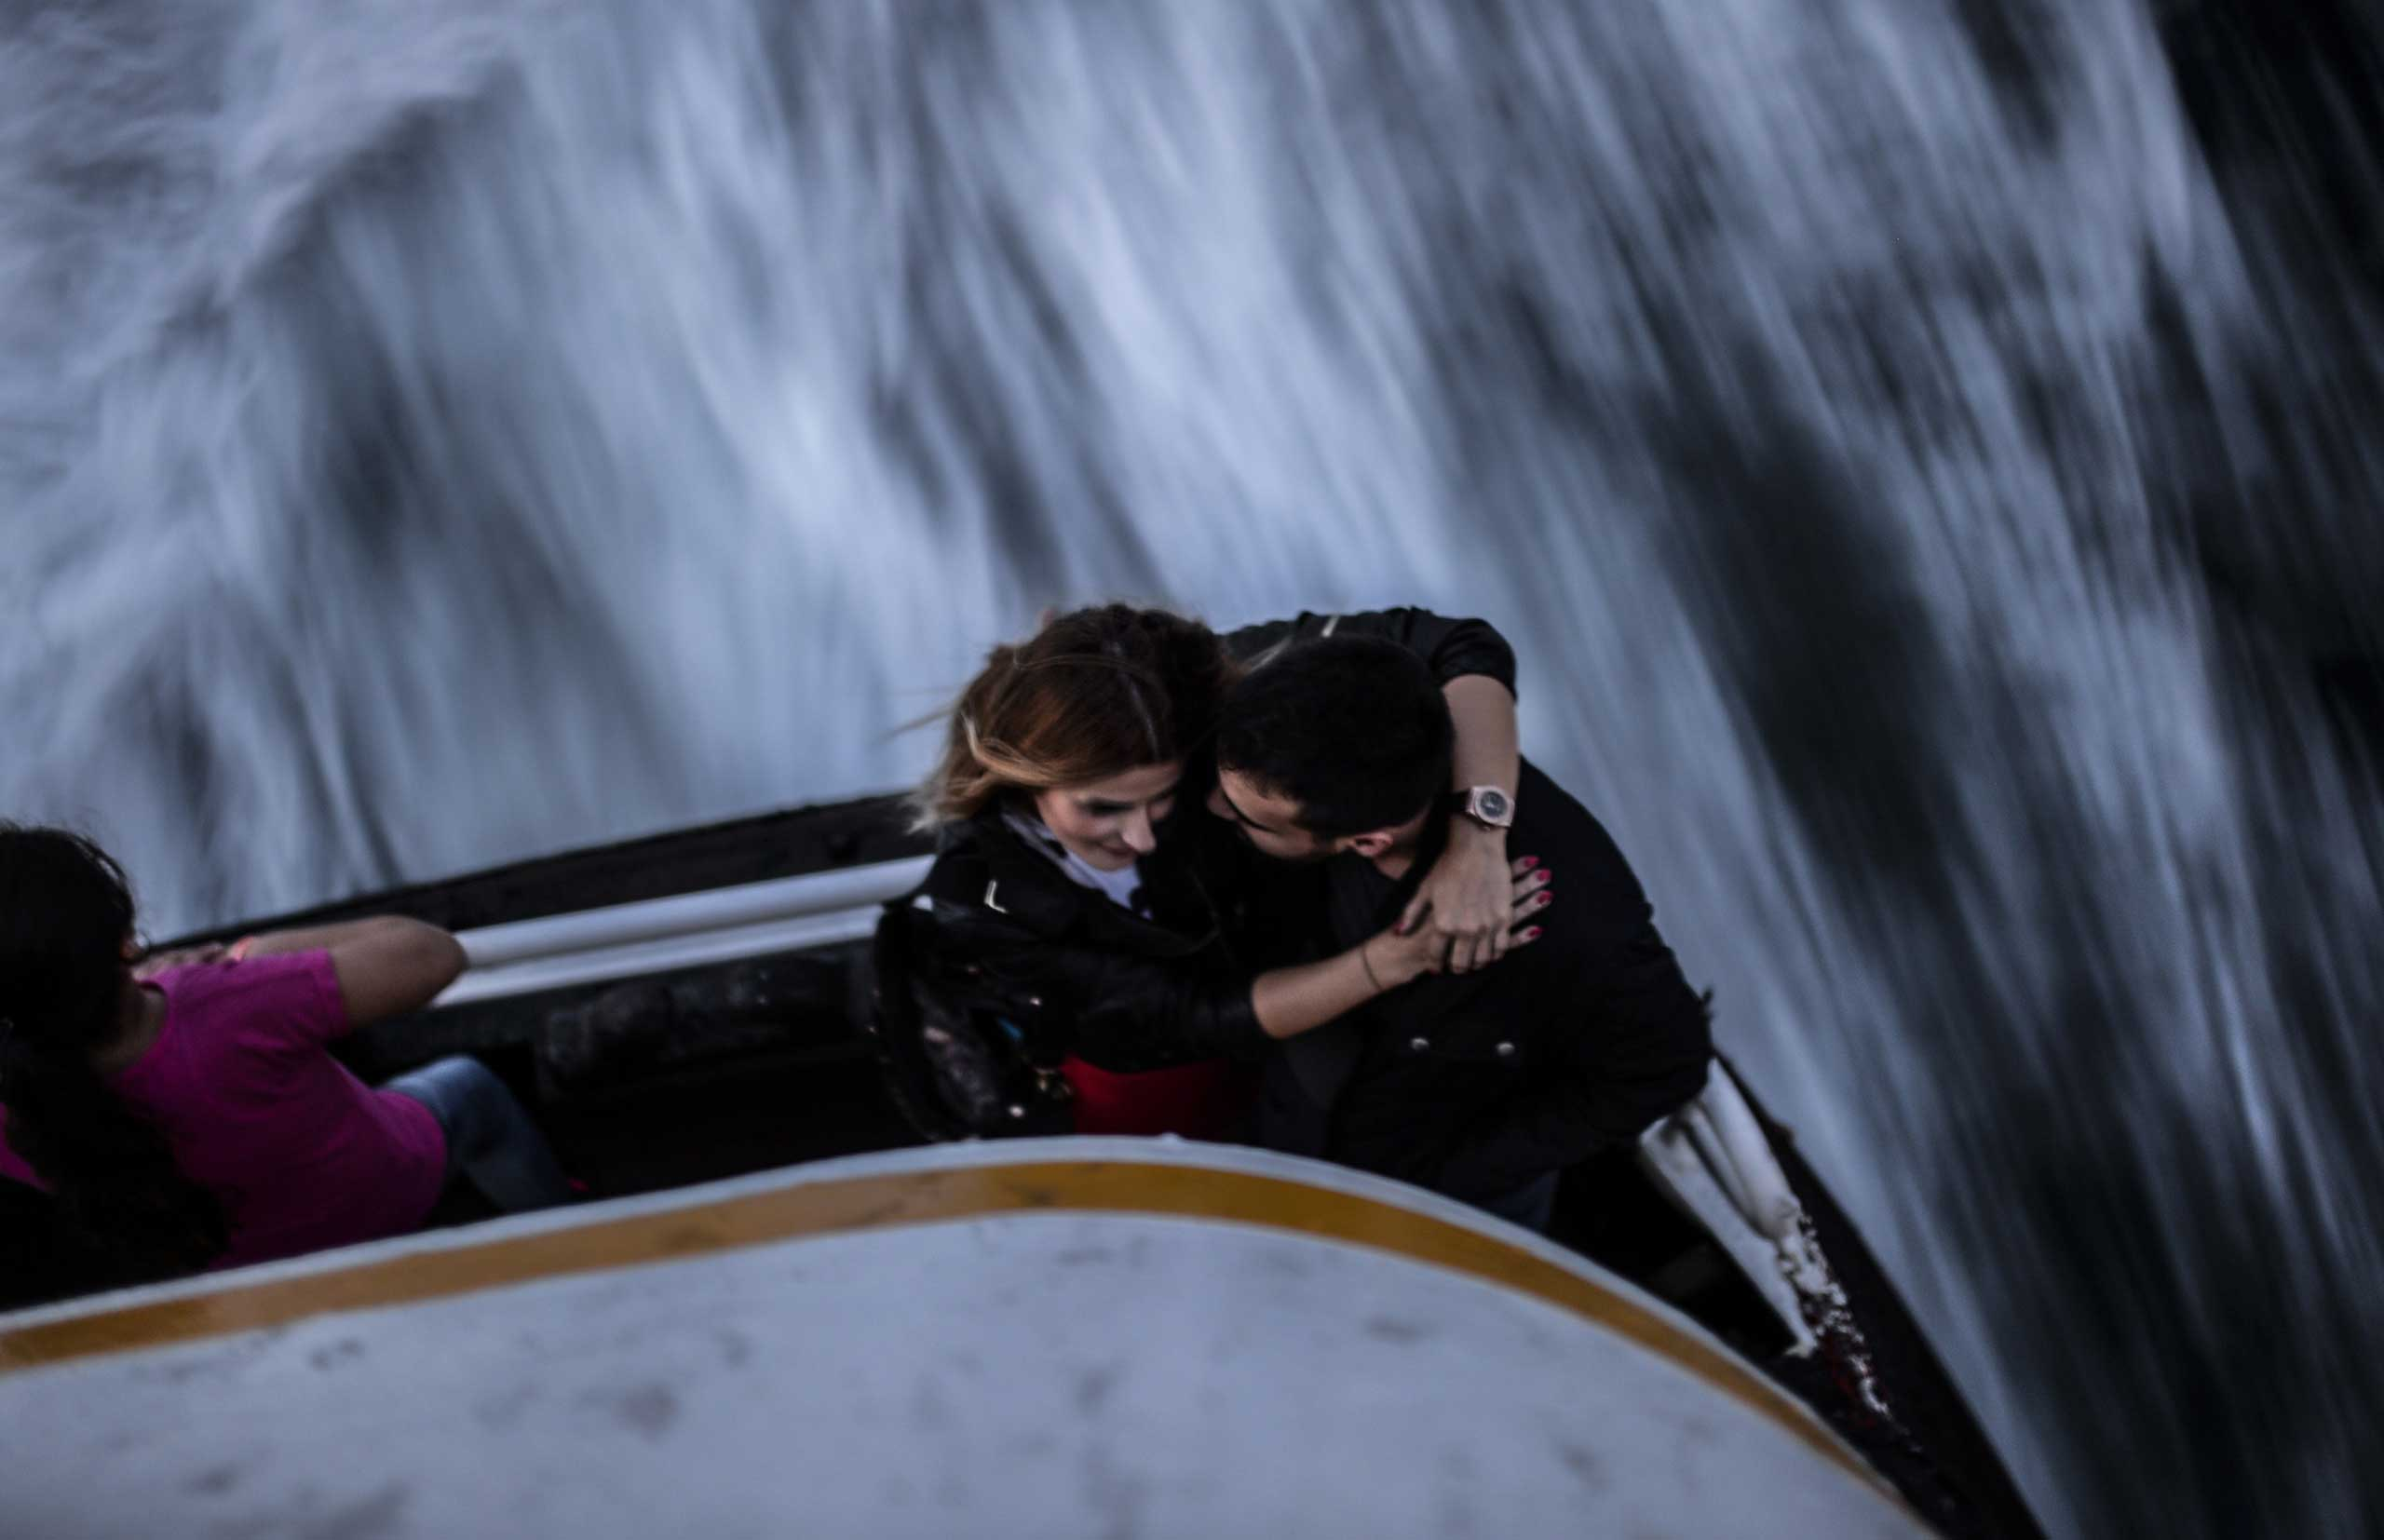 A Turkish couple shares a romantic sunset on a ferry on the Bosphorus, in Istanbul, Turkey, on Oct. 17, 2014.